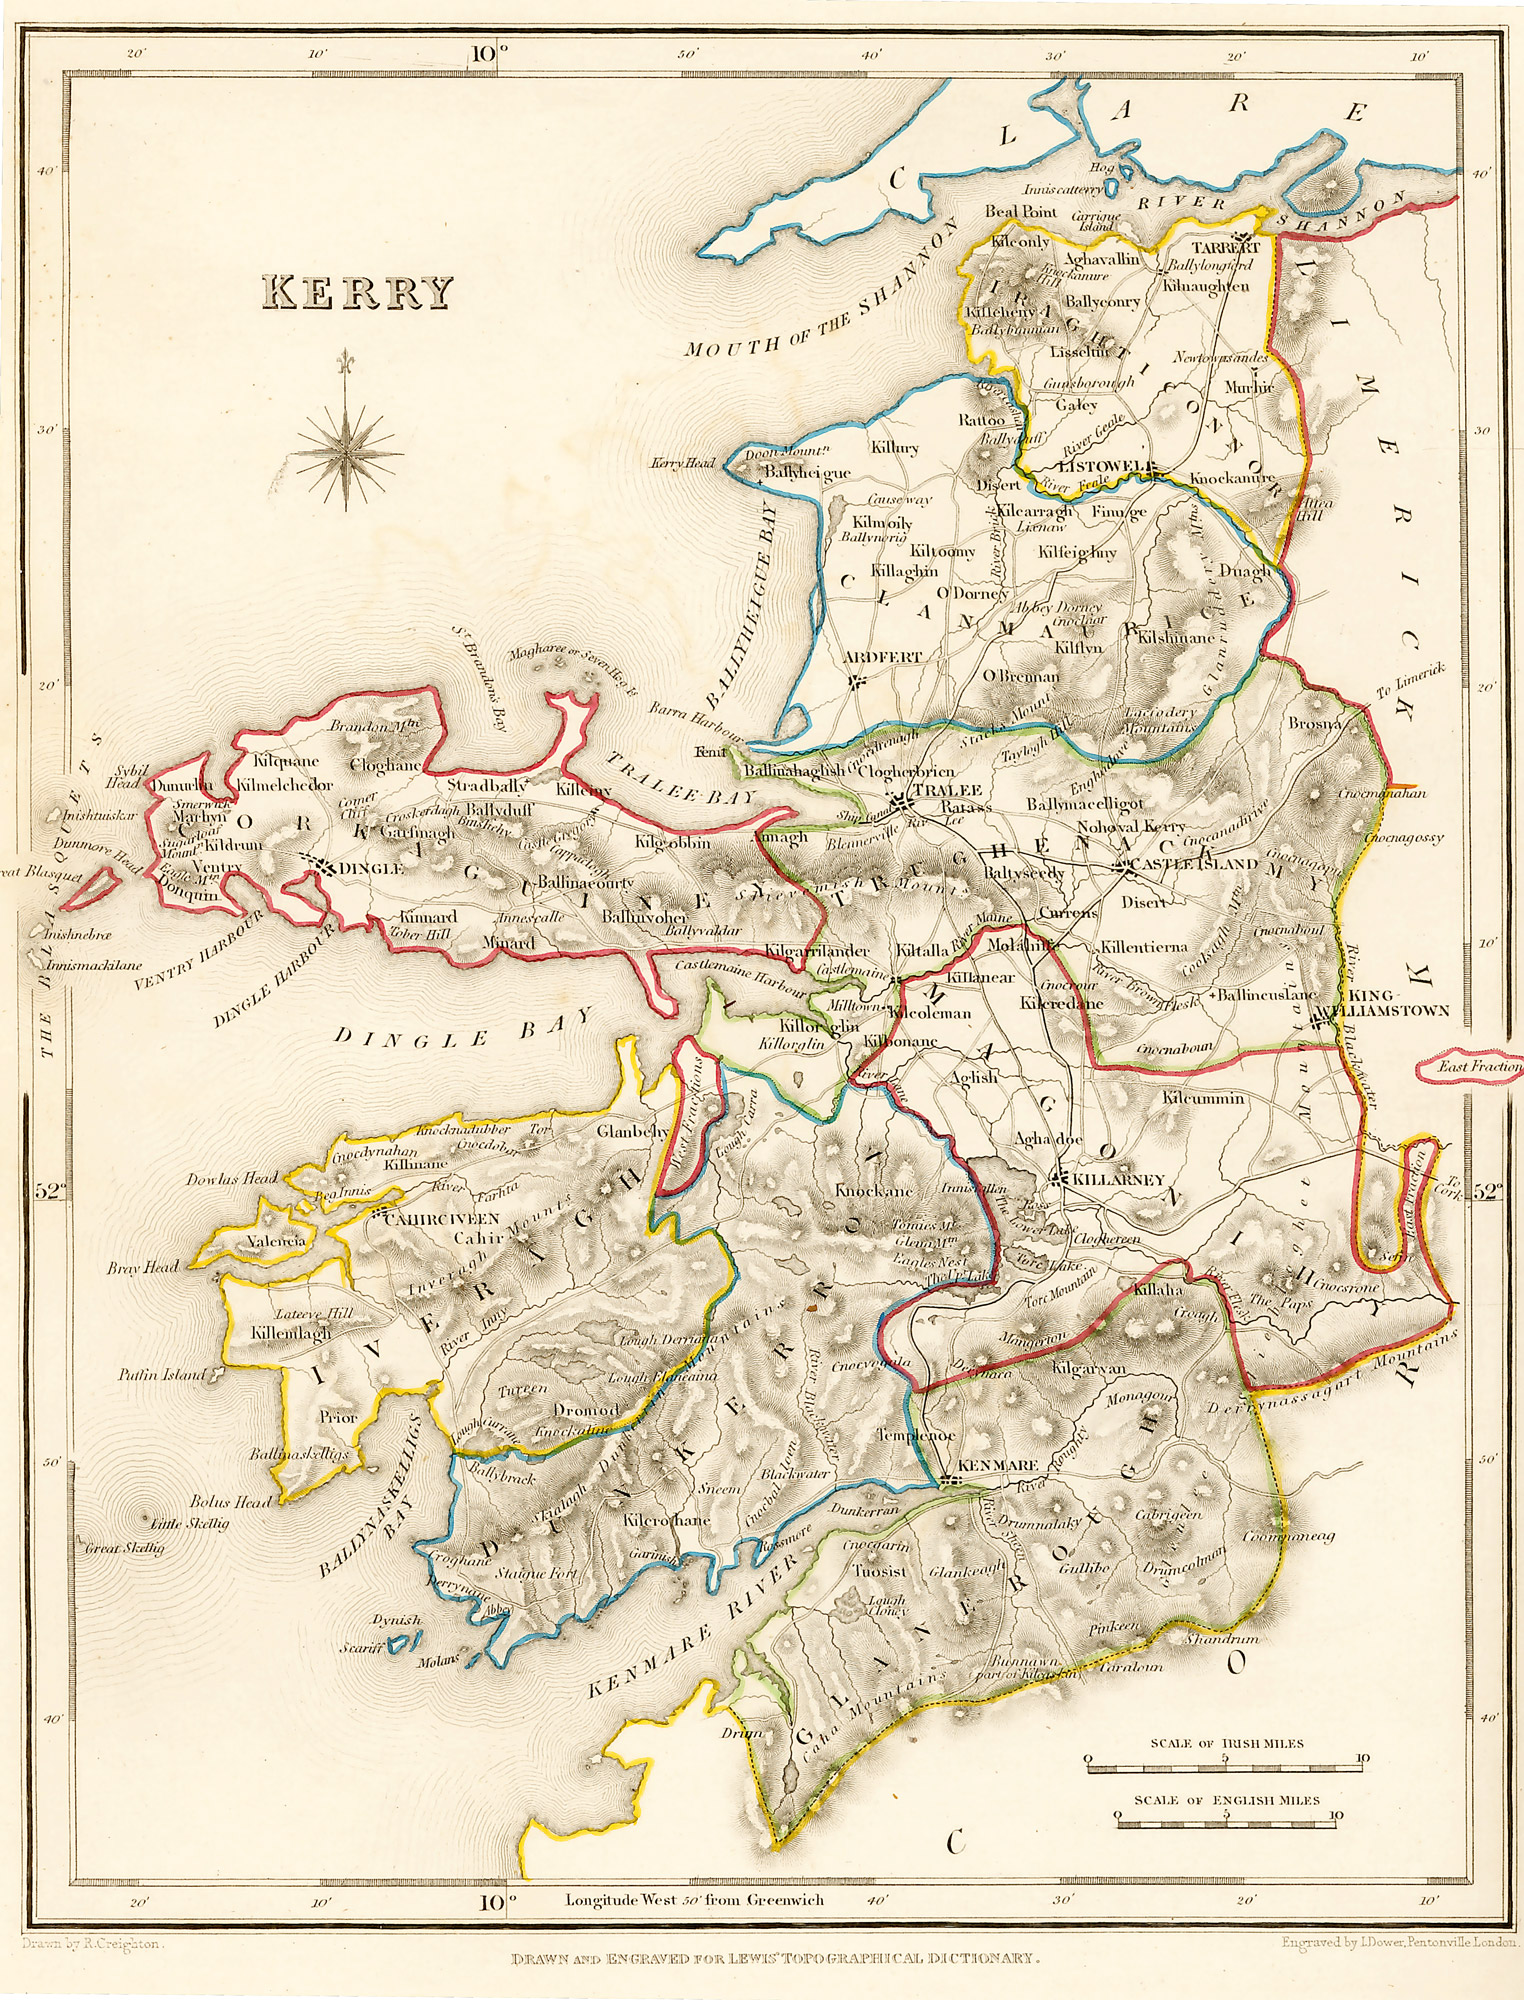 Map Of Ireland 1600.Historic Maps All Island Ireland Map Collections At Ucd